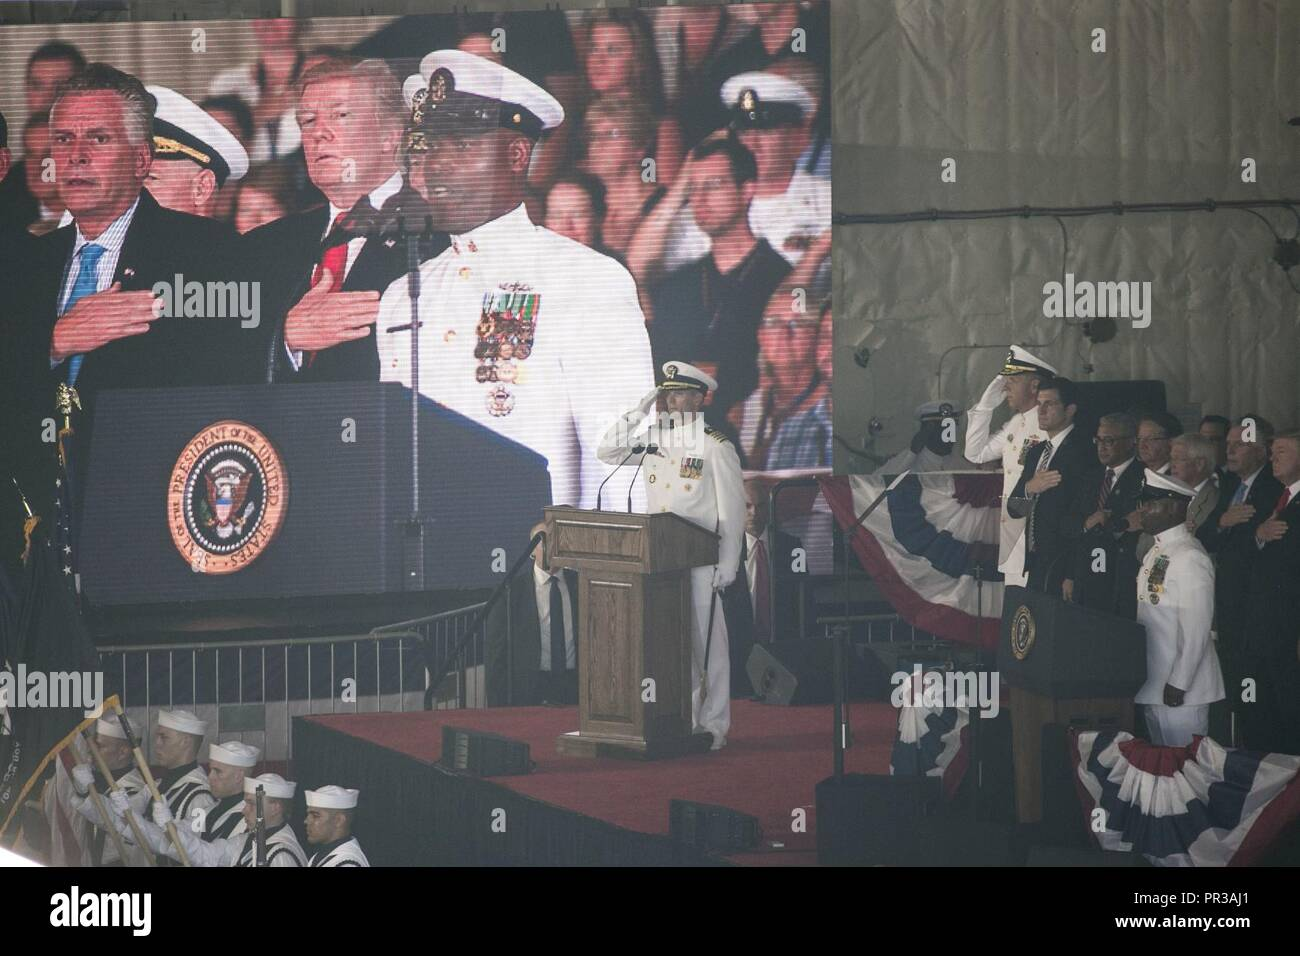 NORFOLK, Va. (July 22, 2017) -- Chief Yeoman Berwyn Tinnion, a USS Gerald R. Ford Sailor, sings the National Anthem during Ford's commissioning ceremony. Ford is the lead ship of the Ford-class aircraft carriers, and the first new U.S. aircraft carrier design in 40 years. - Stock Image